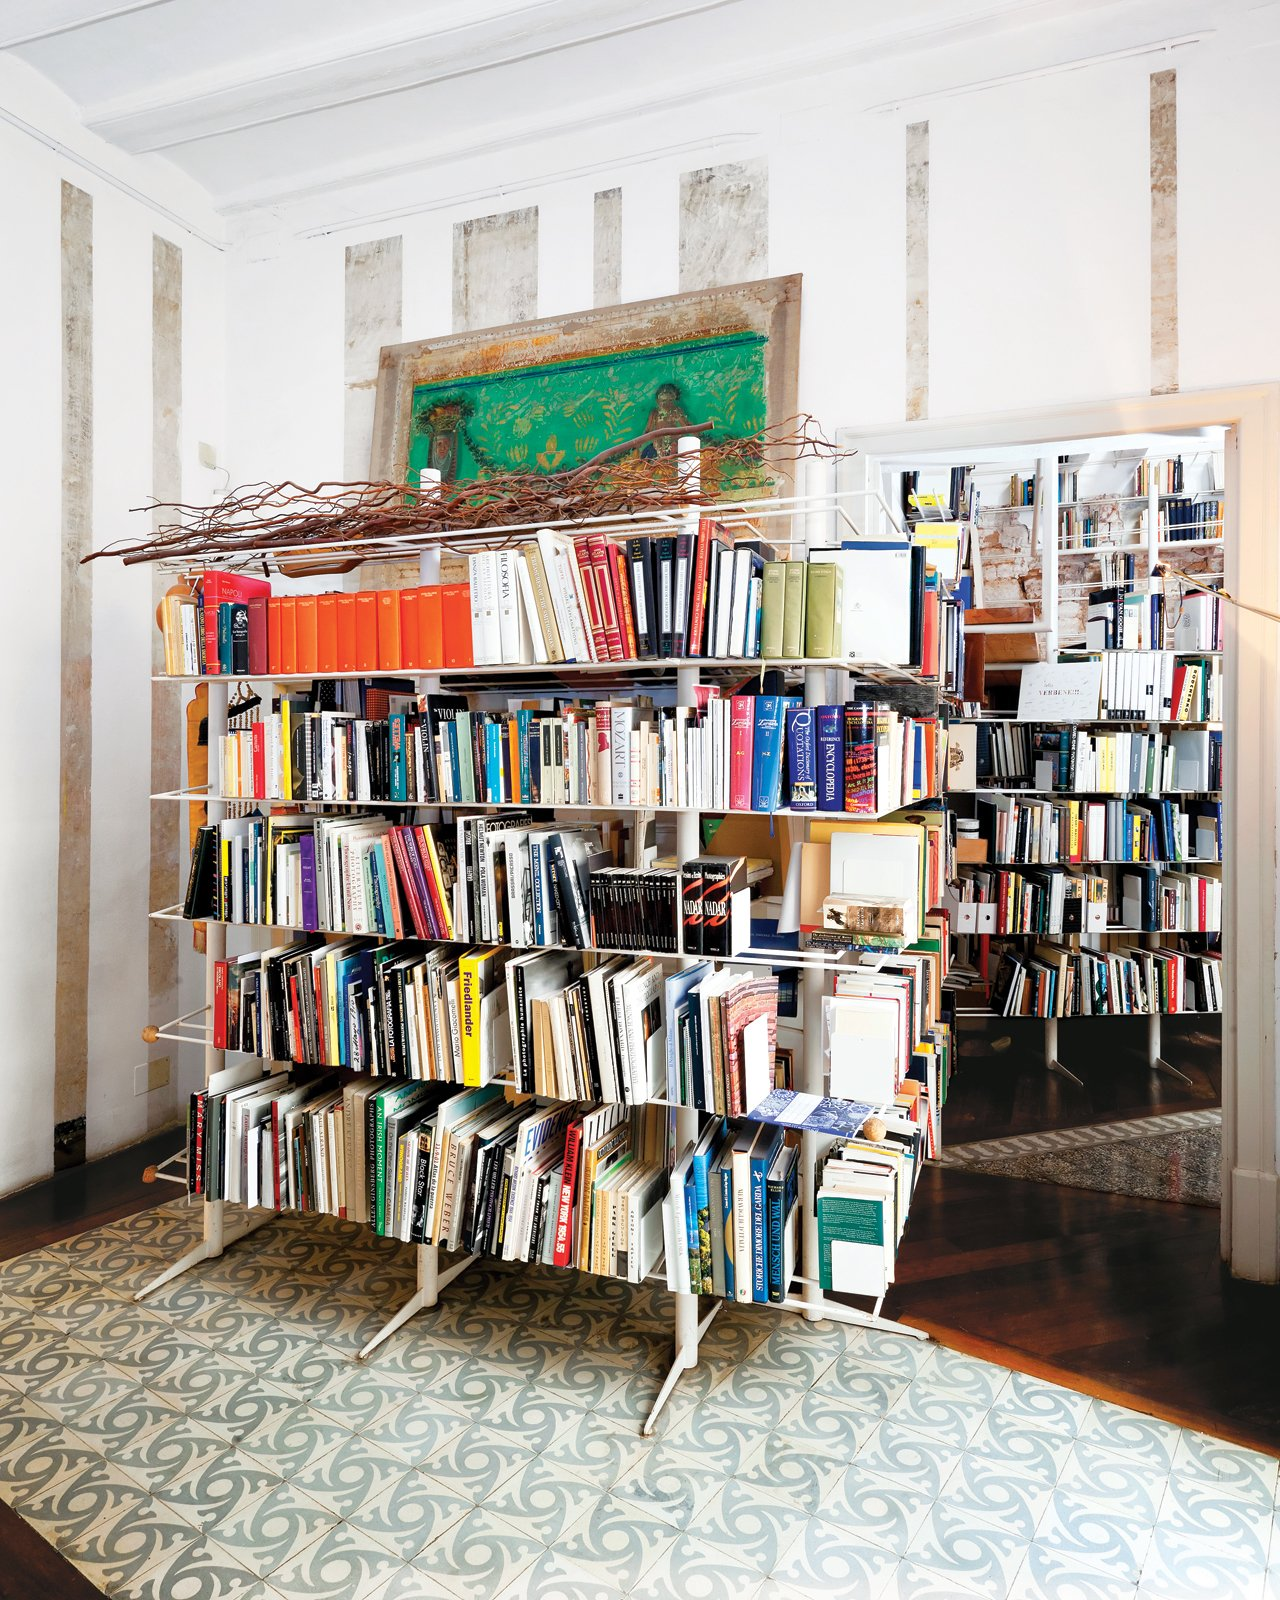 Freestanding shelving by Miralles holds yet more tomes from the family's prodigious collection. Irregularly placed tilework on the floor follows the trajectory of the sun's rays as it travels across the room.  30+ Modern Homes With Libraries by Matthew Keeshin from The Barcelona Home Like No Other